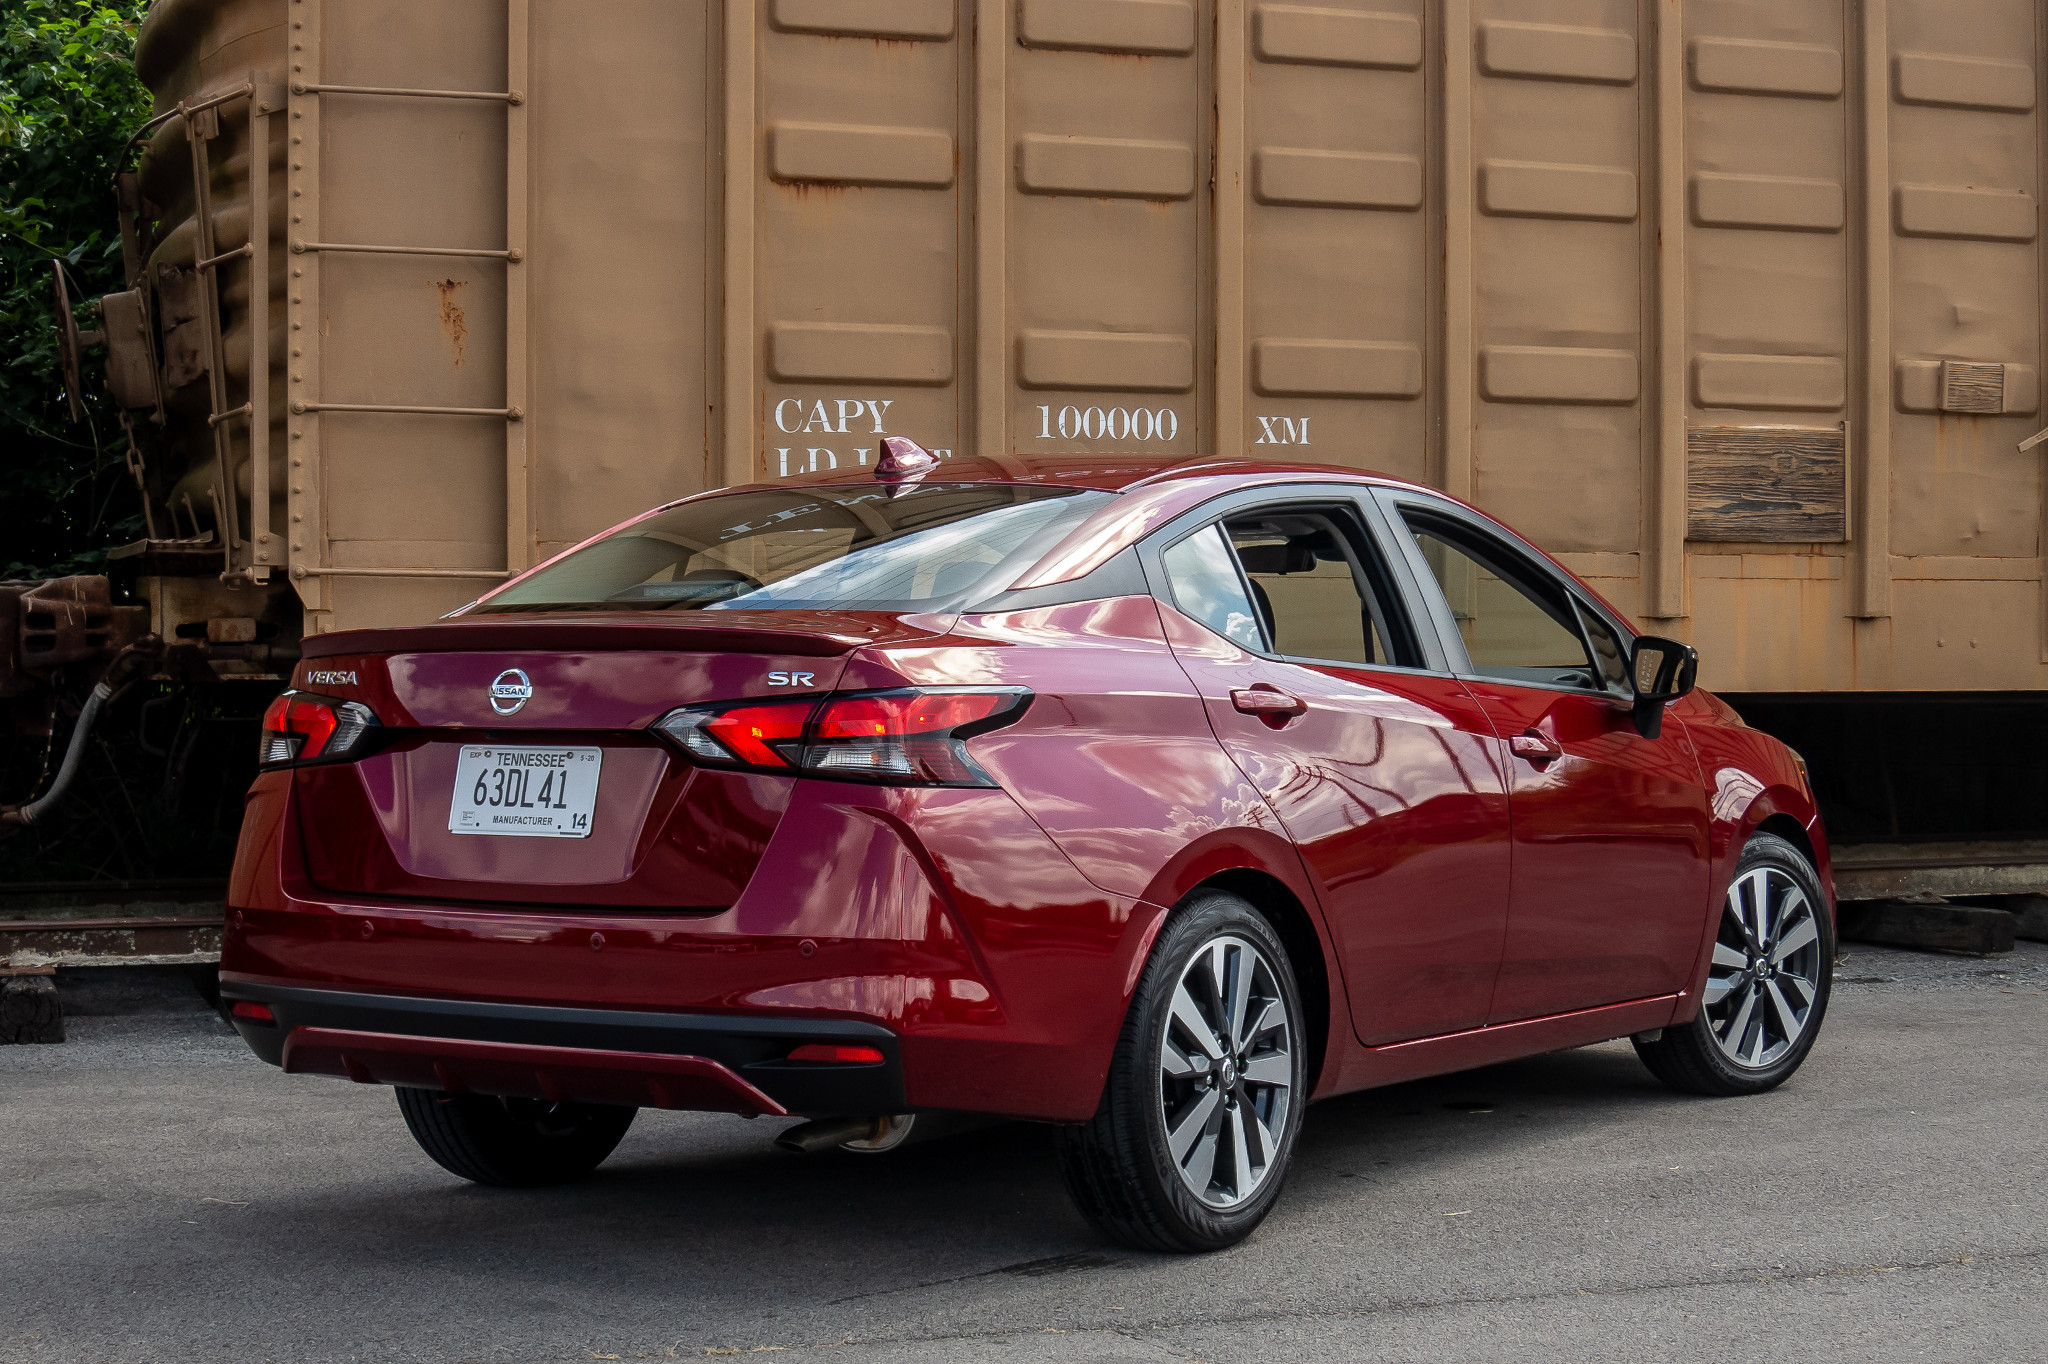 2020 Nissan Versa Review: Not as Cheap, Much Better Value